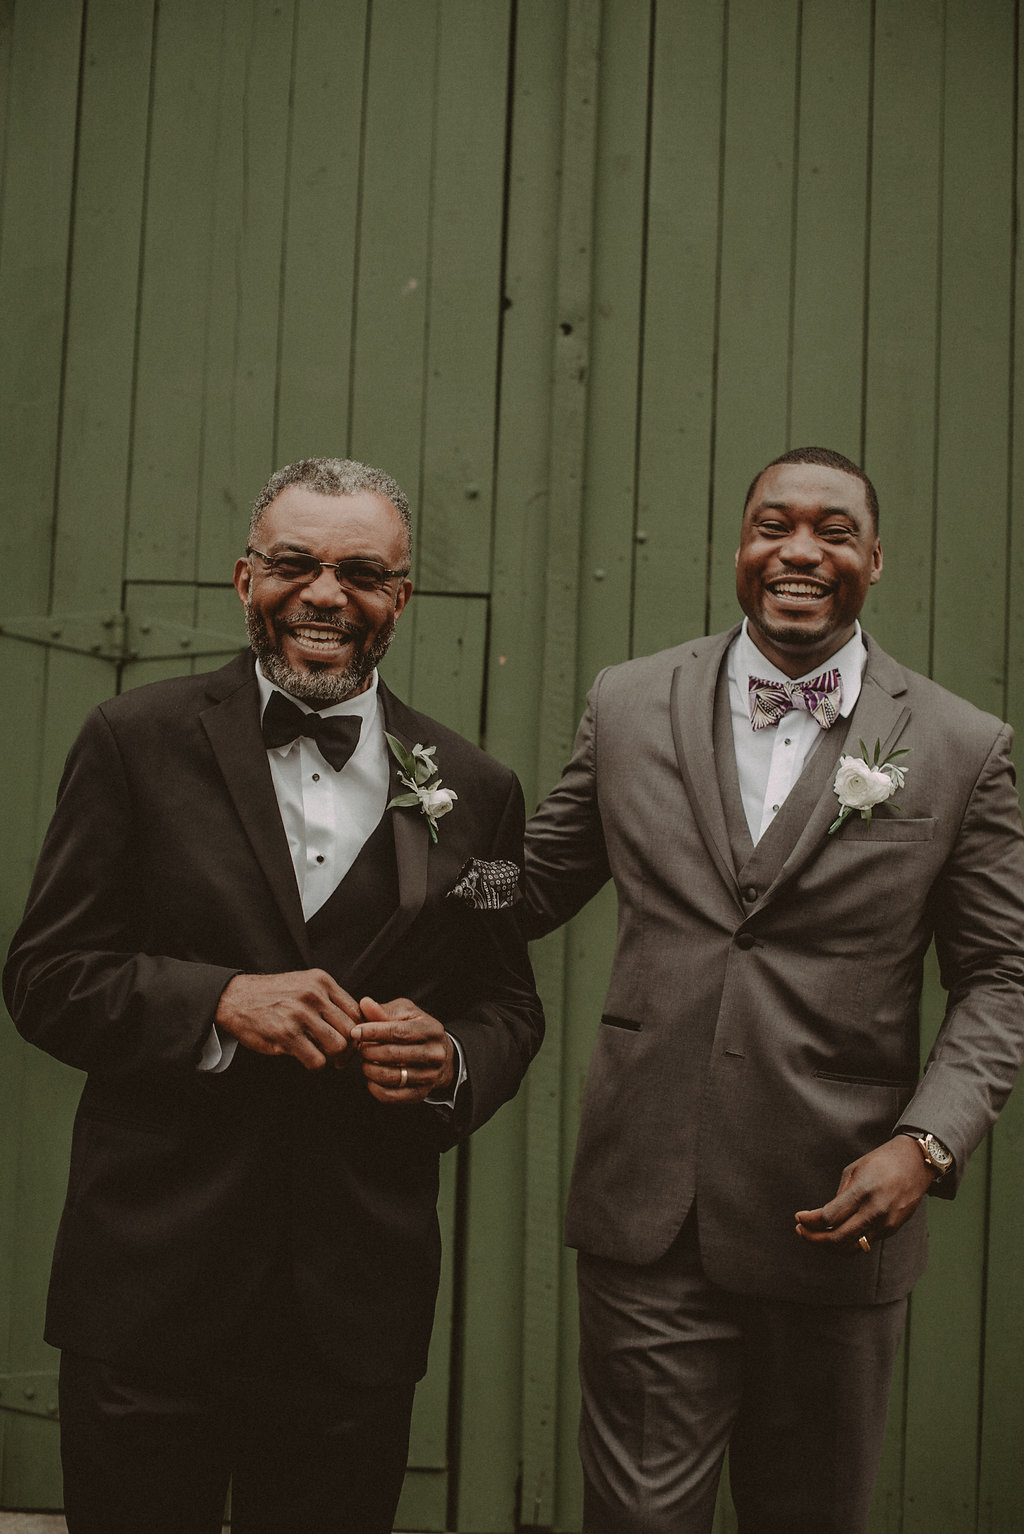 Groom and father after wedding